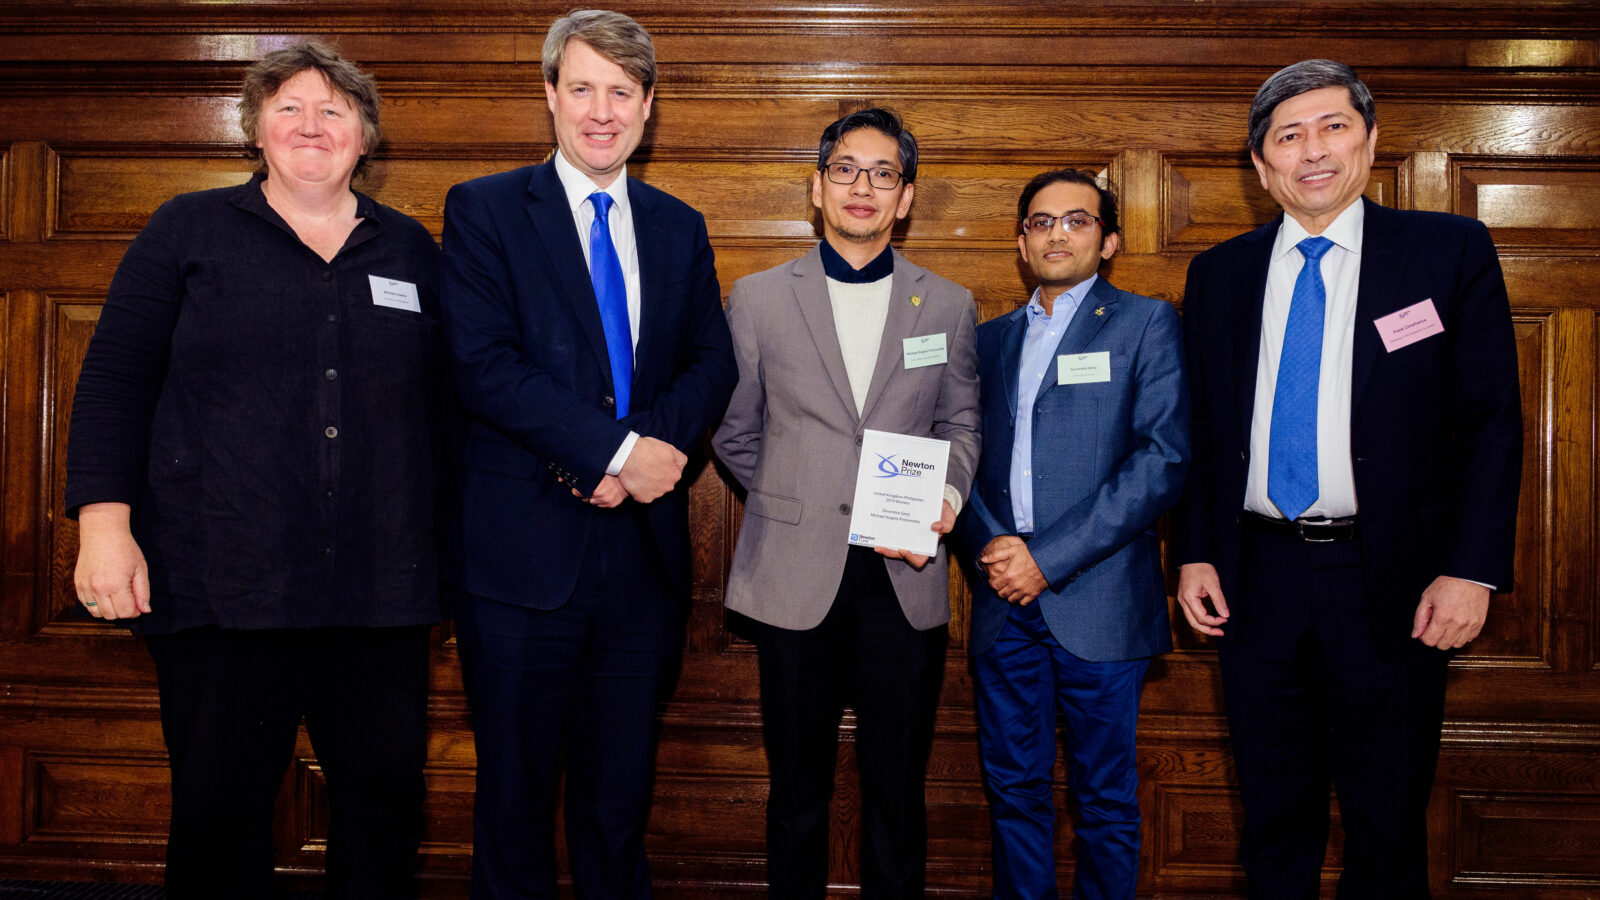 Image of Newton Prize 2019 Philippines winners at London event